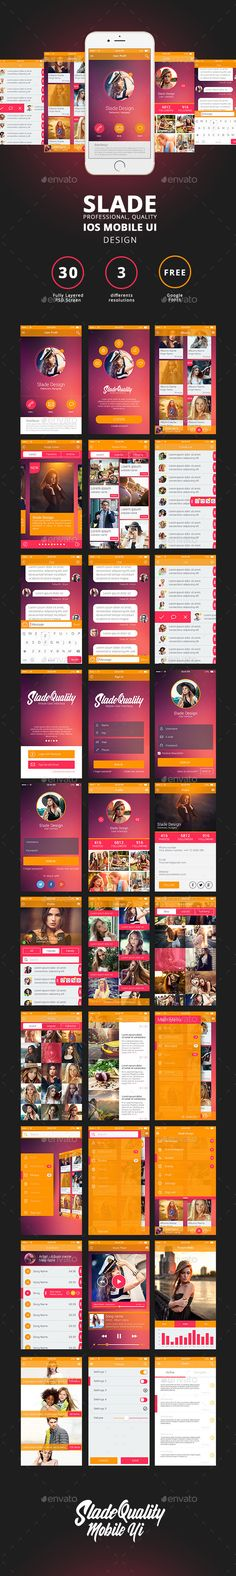 SLADE Professional Quality IOS mobile UI DESIGN